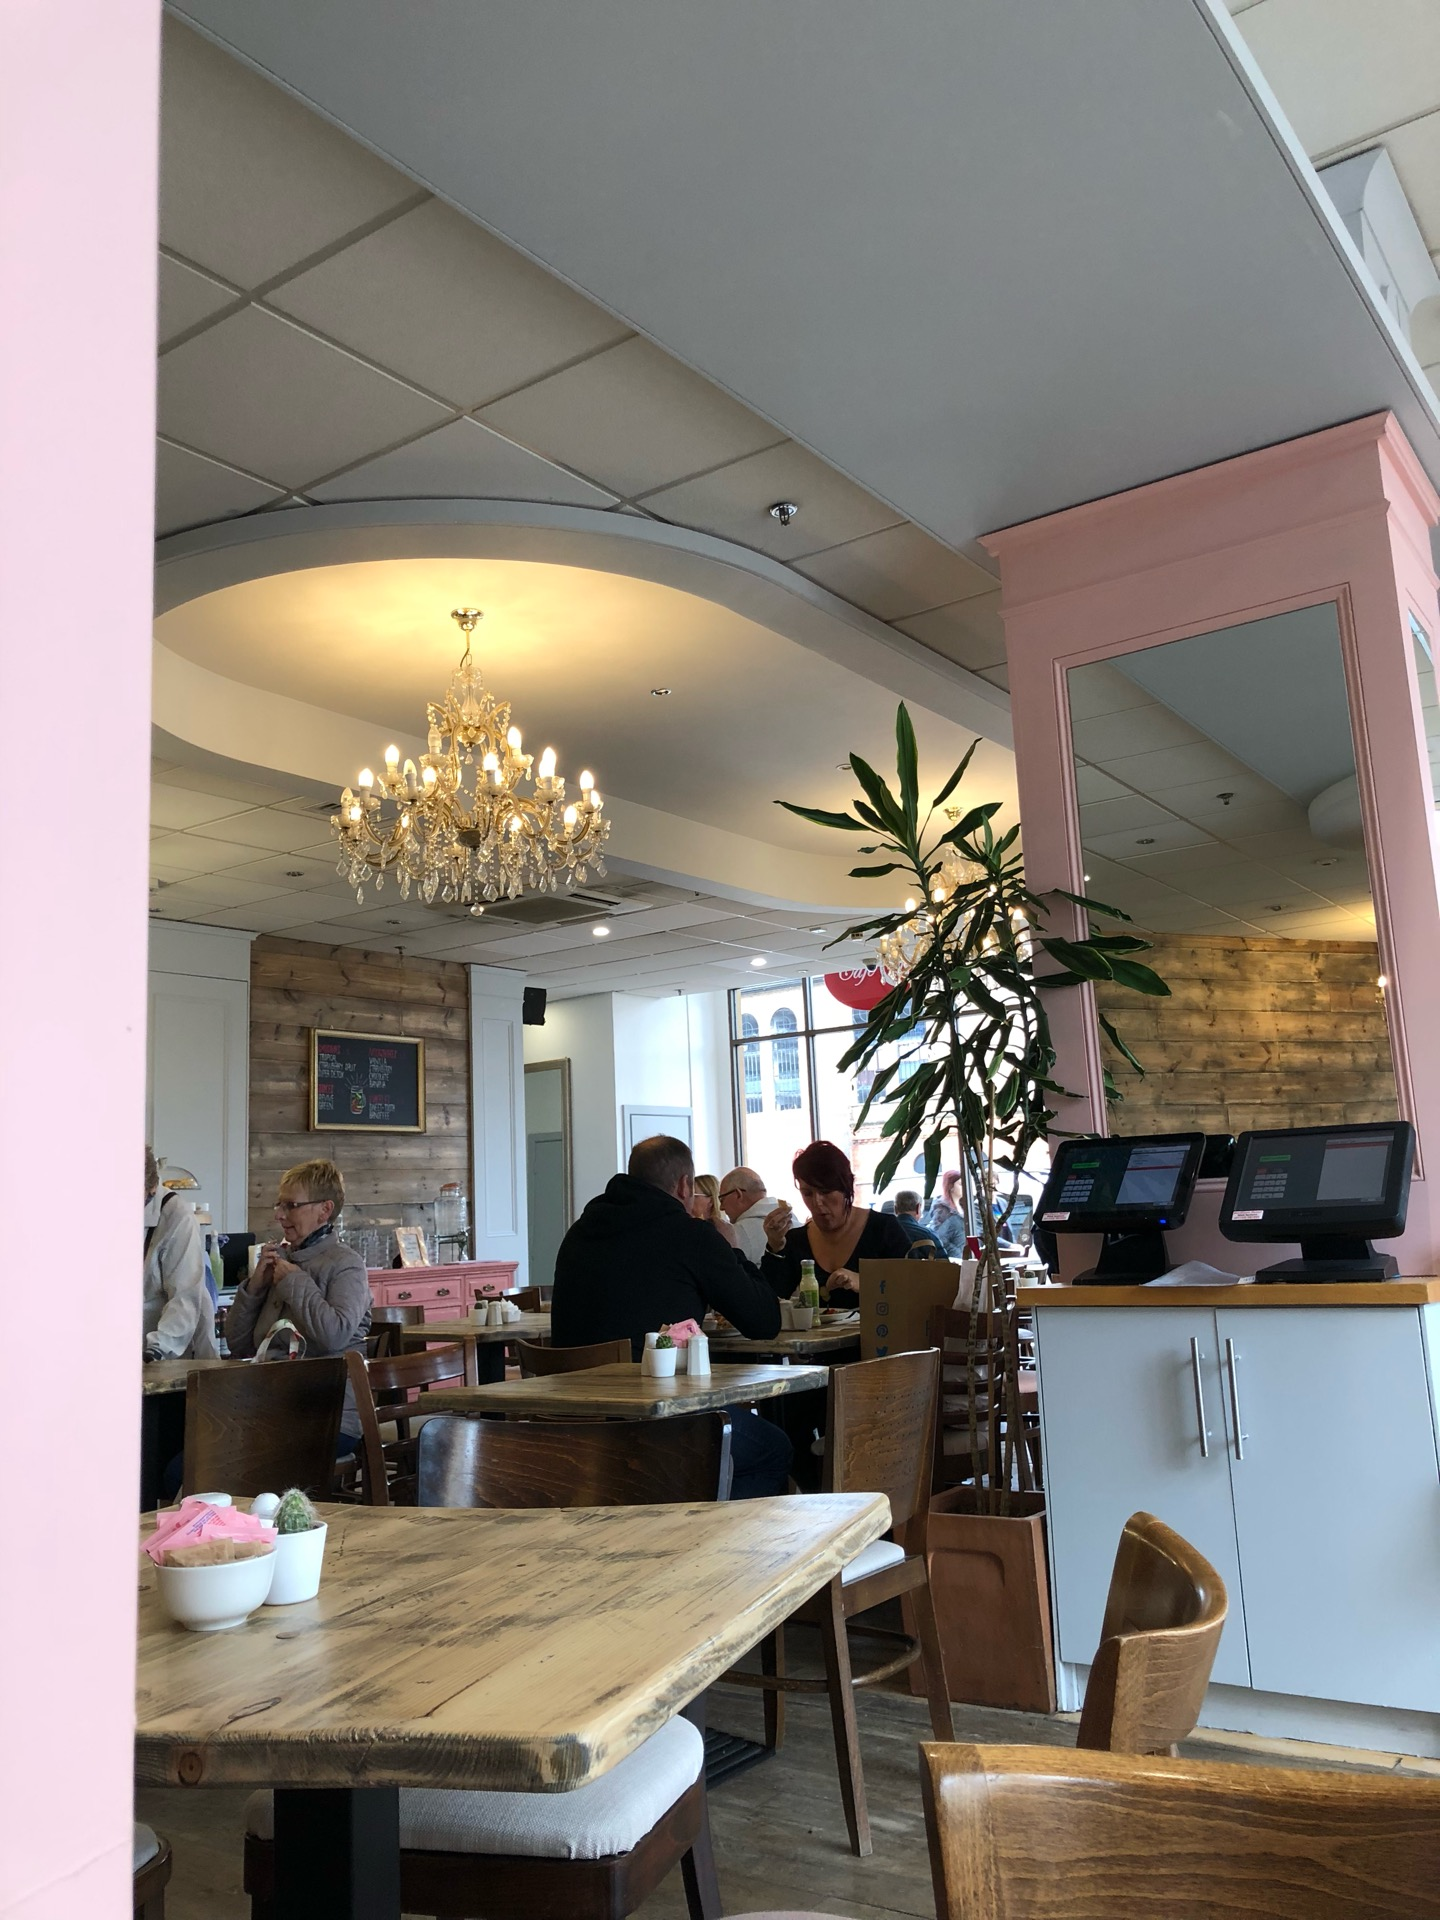 Cafe m harrogate, Unit 10, Victoria Shopping Centre, Station Parade | Unit 10, Victoria Shopping Centre, Station Parade, Harrogate HG1 1AE | +44 1423 567830